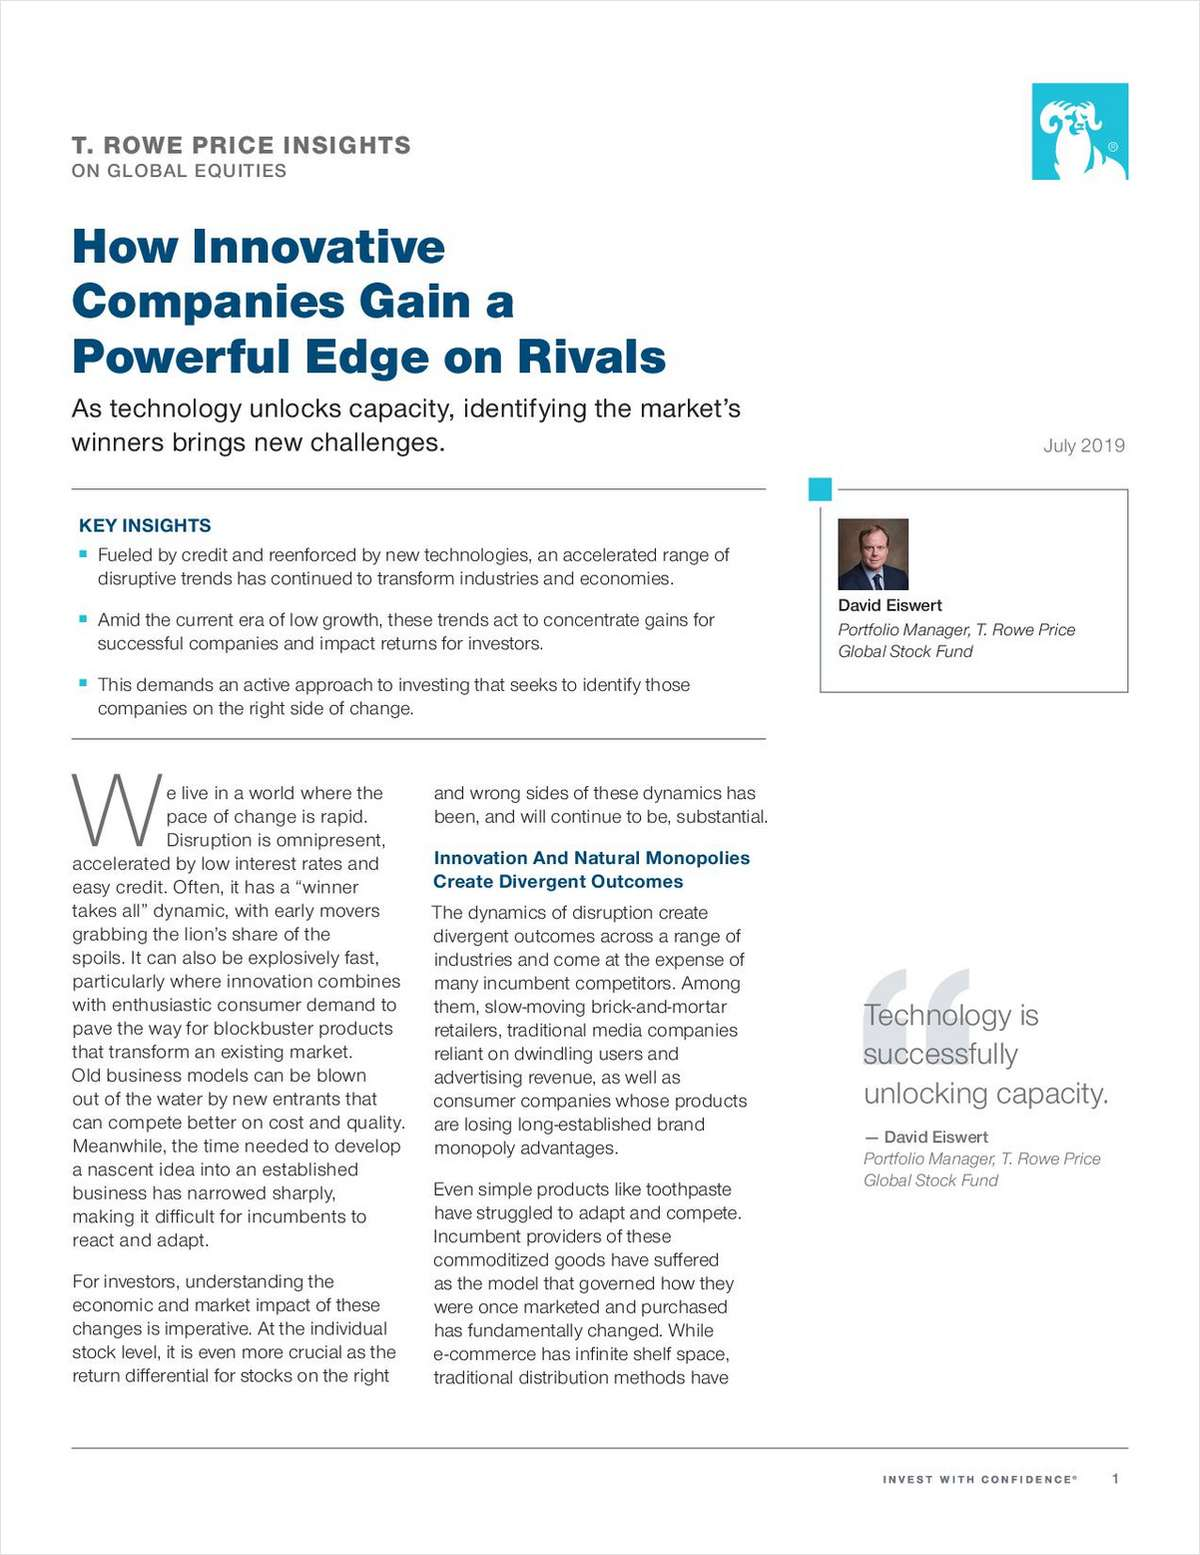 Global Equity Insights: How Innovative Companies Gain a Powerful Edge on Rivals